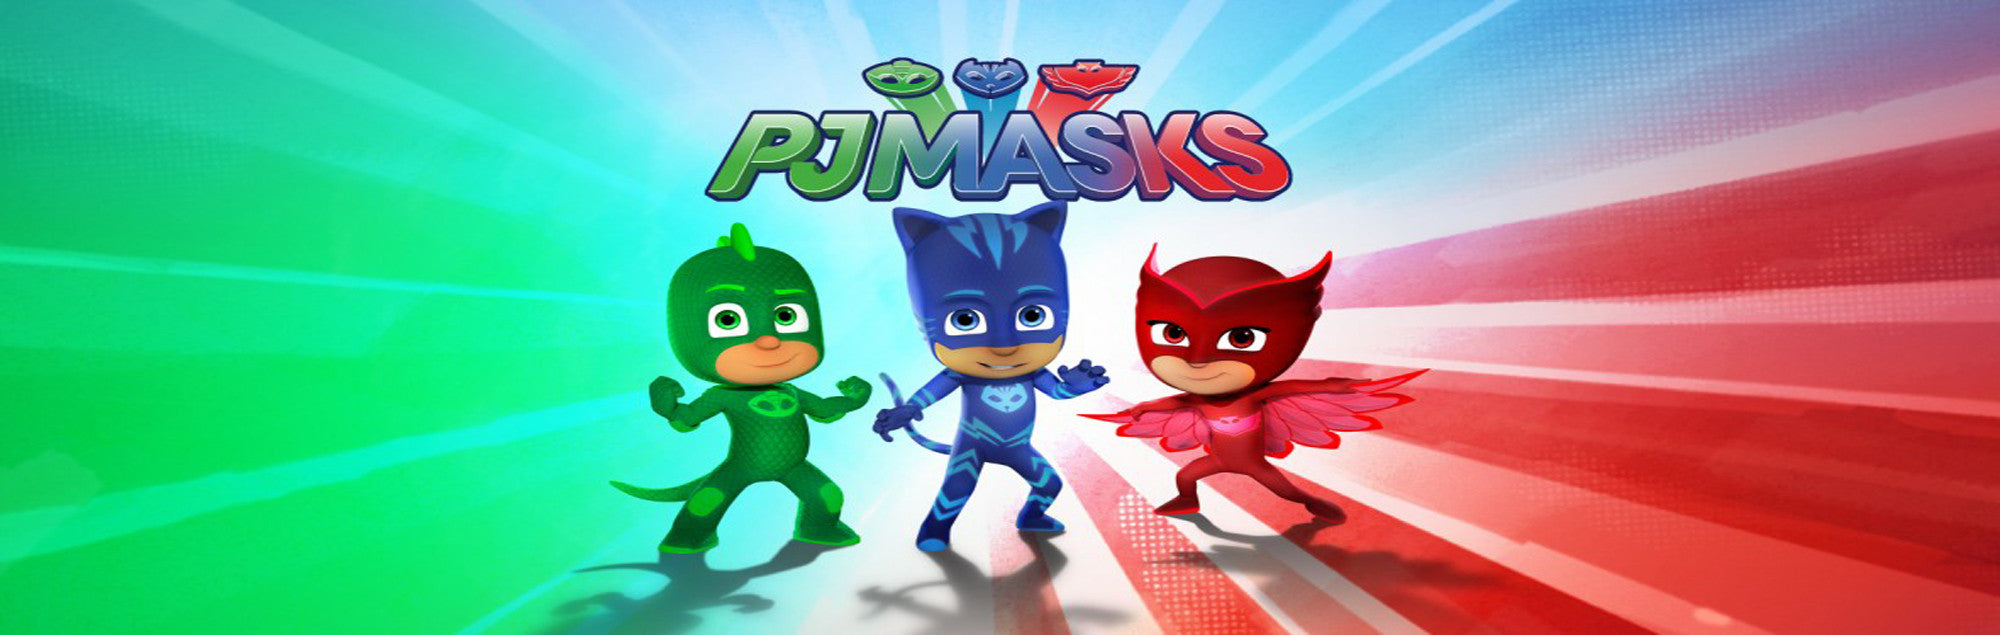 Pj Masks Clothes